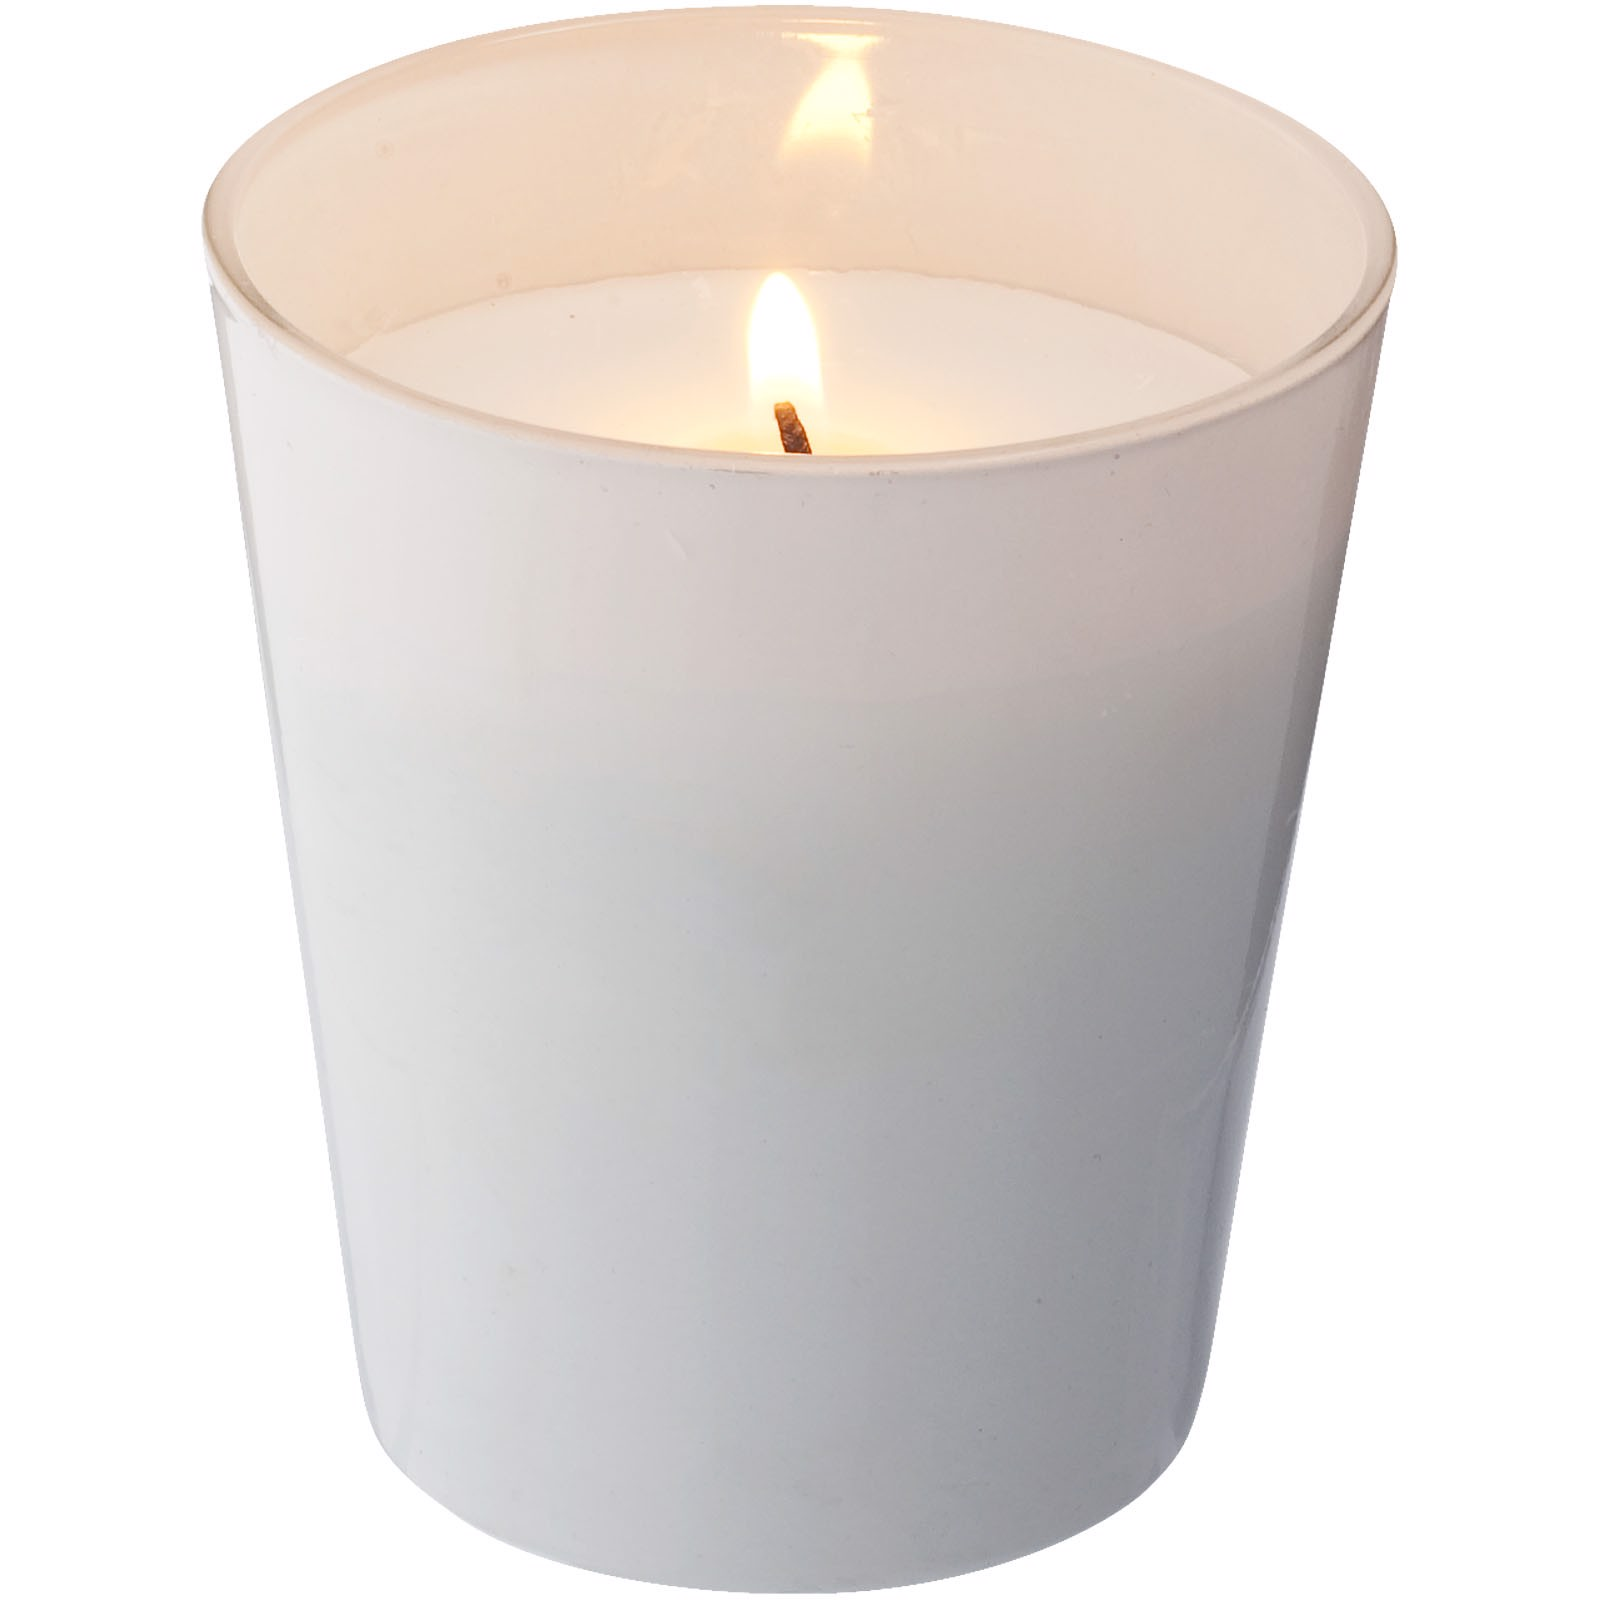 Lunar scented candle - White